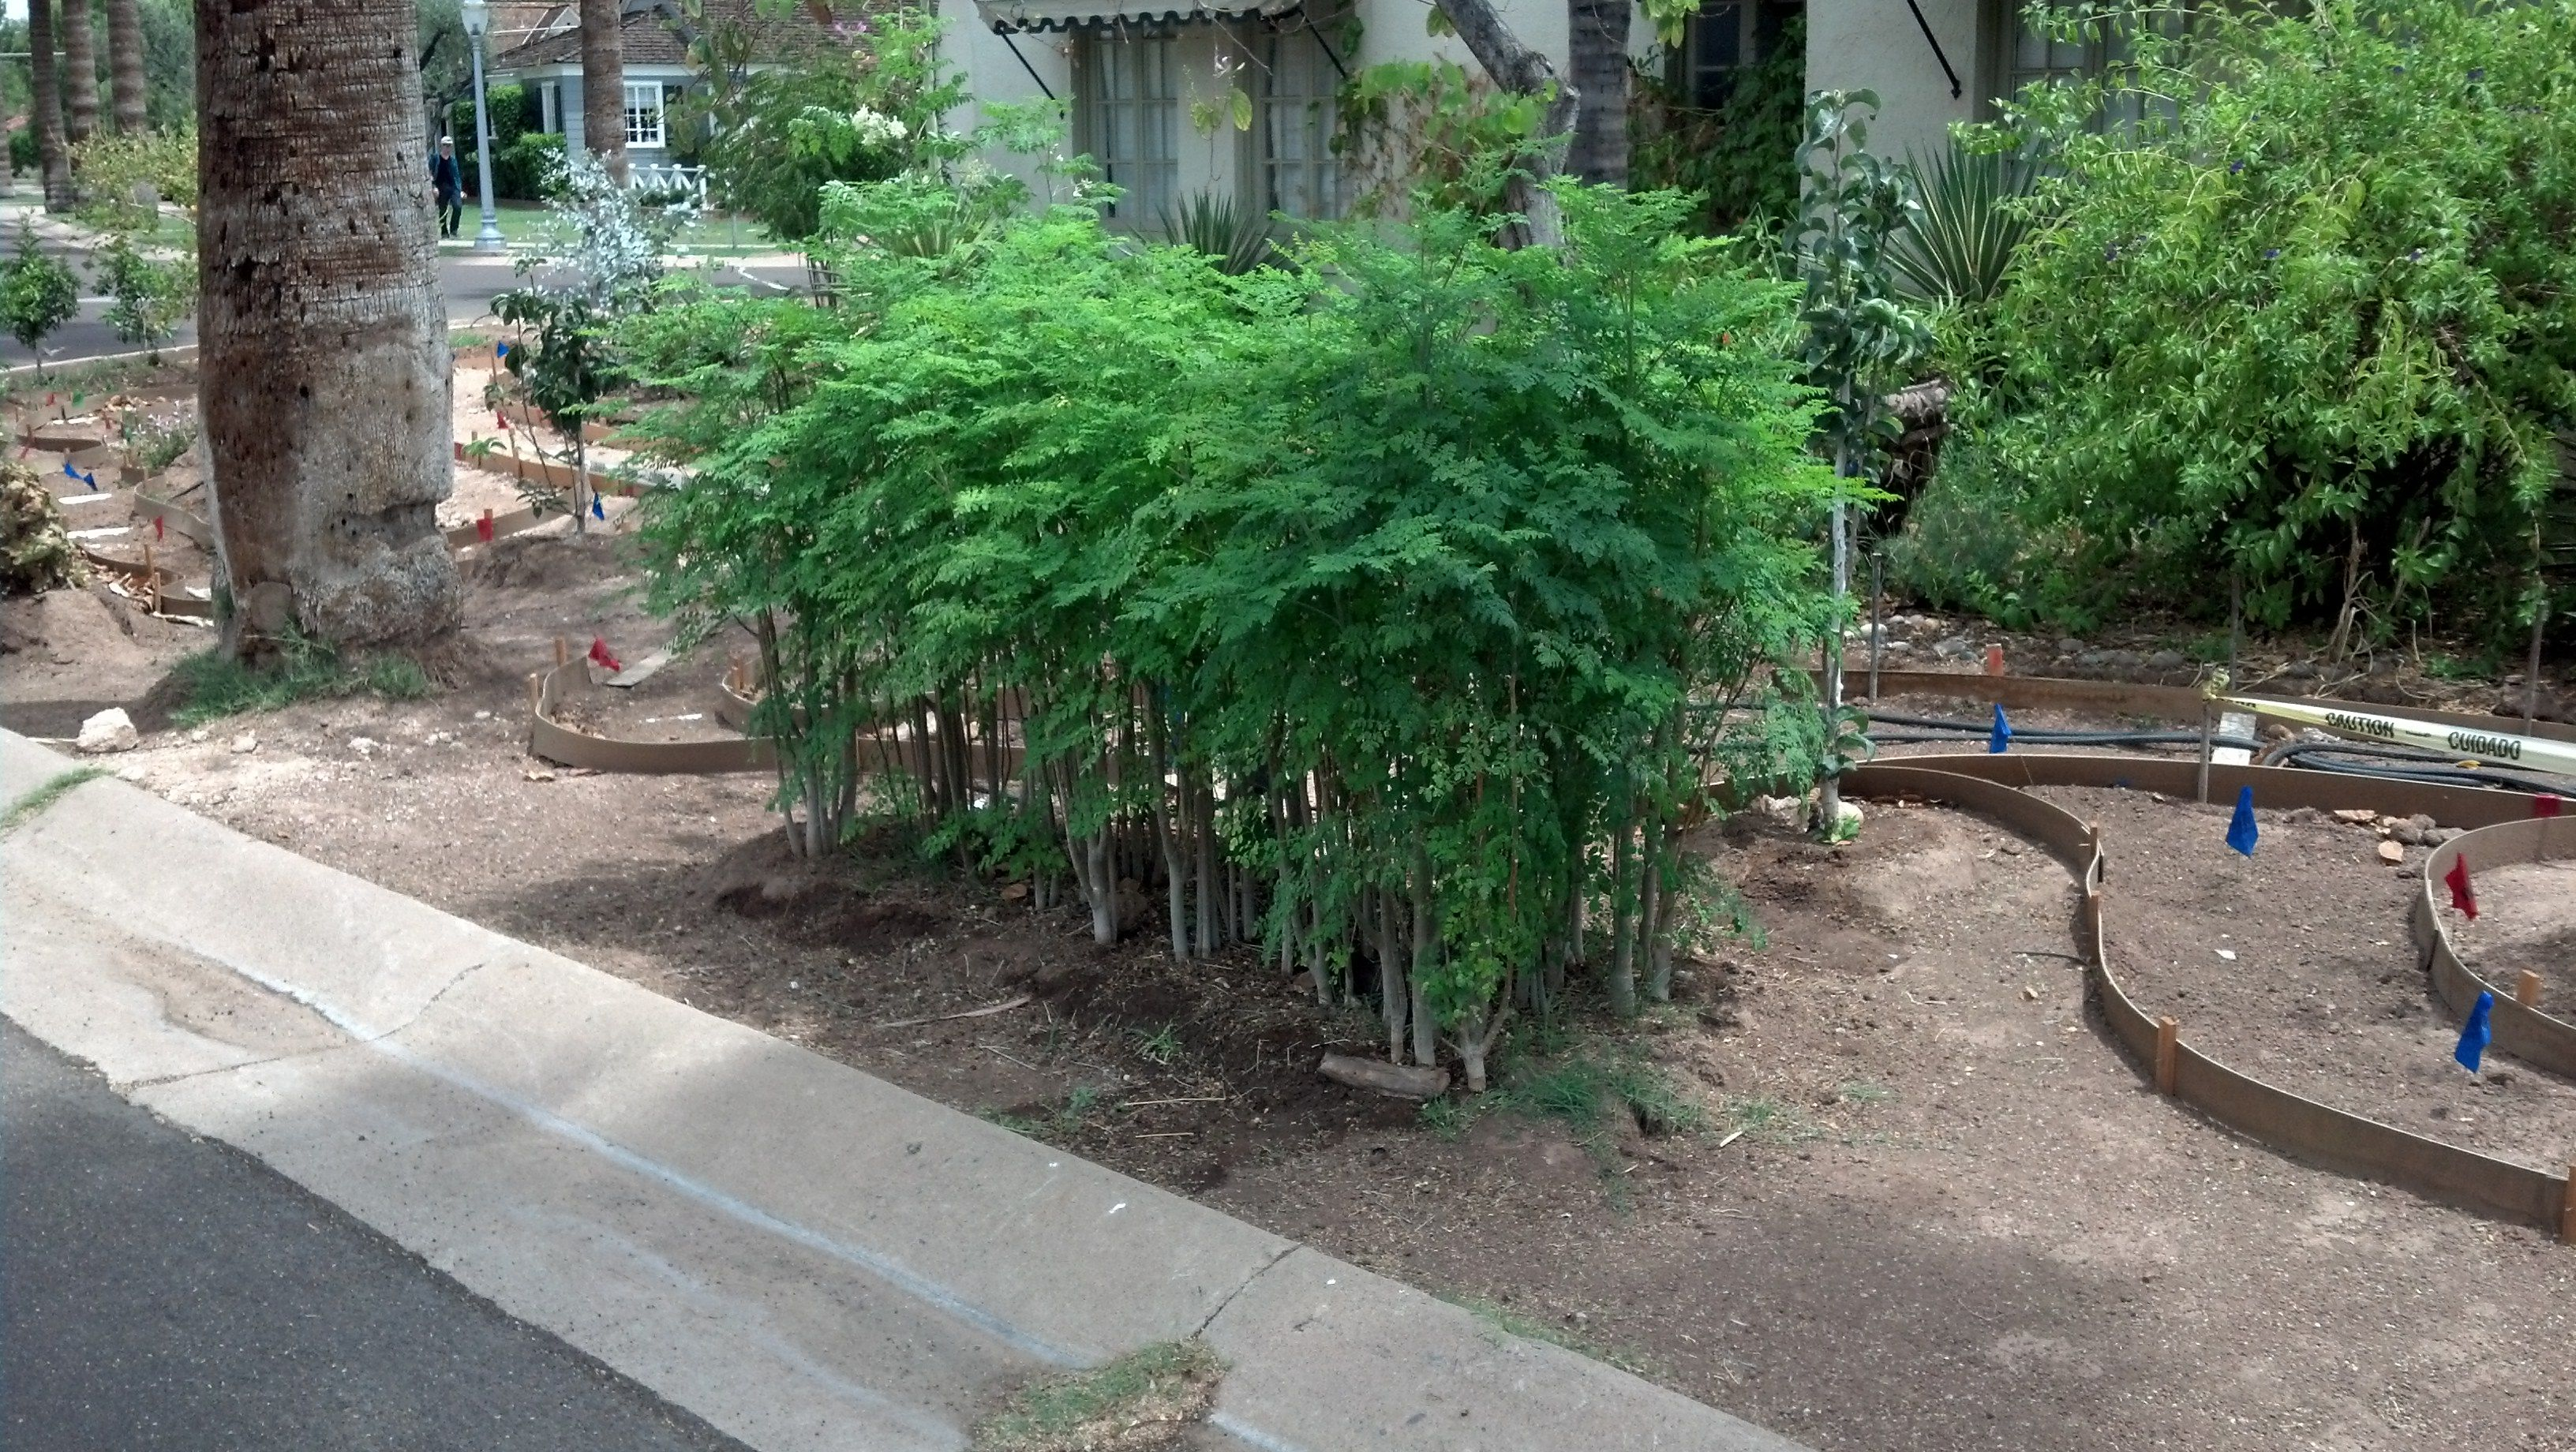 moringa trees cut short as an edible hedge to shade the garden